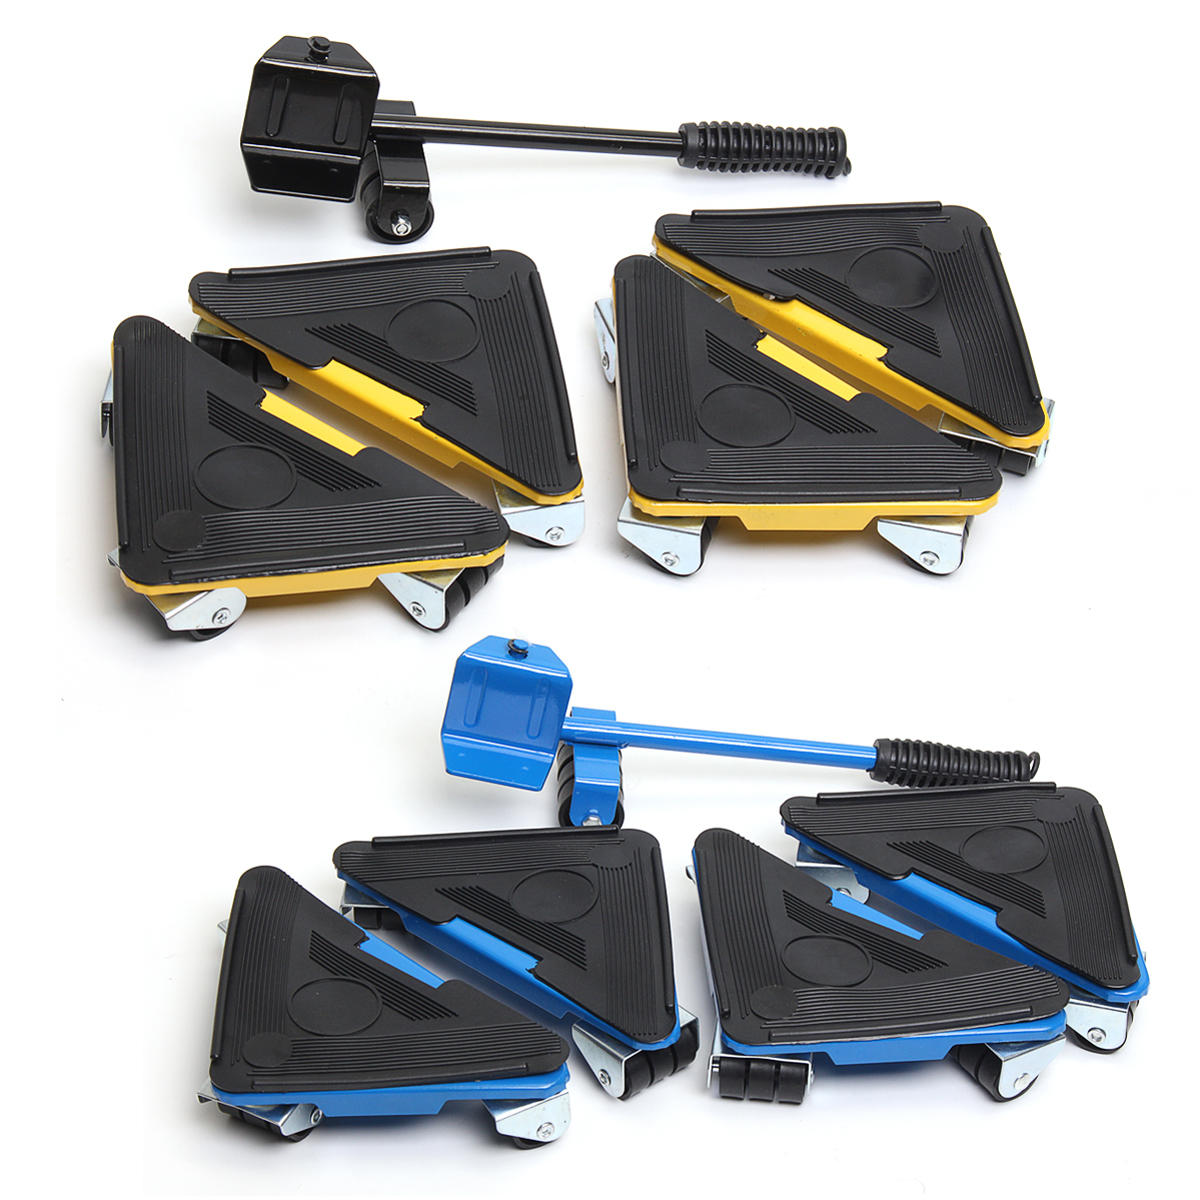 5pcs Furniture Lifter Moves Triple Wheels Mover Sliders Tools Kit Moving System Cod